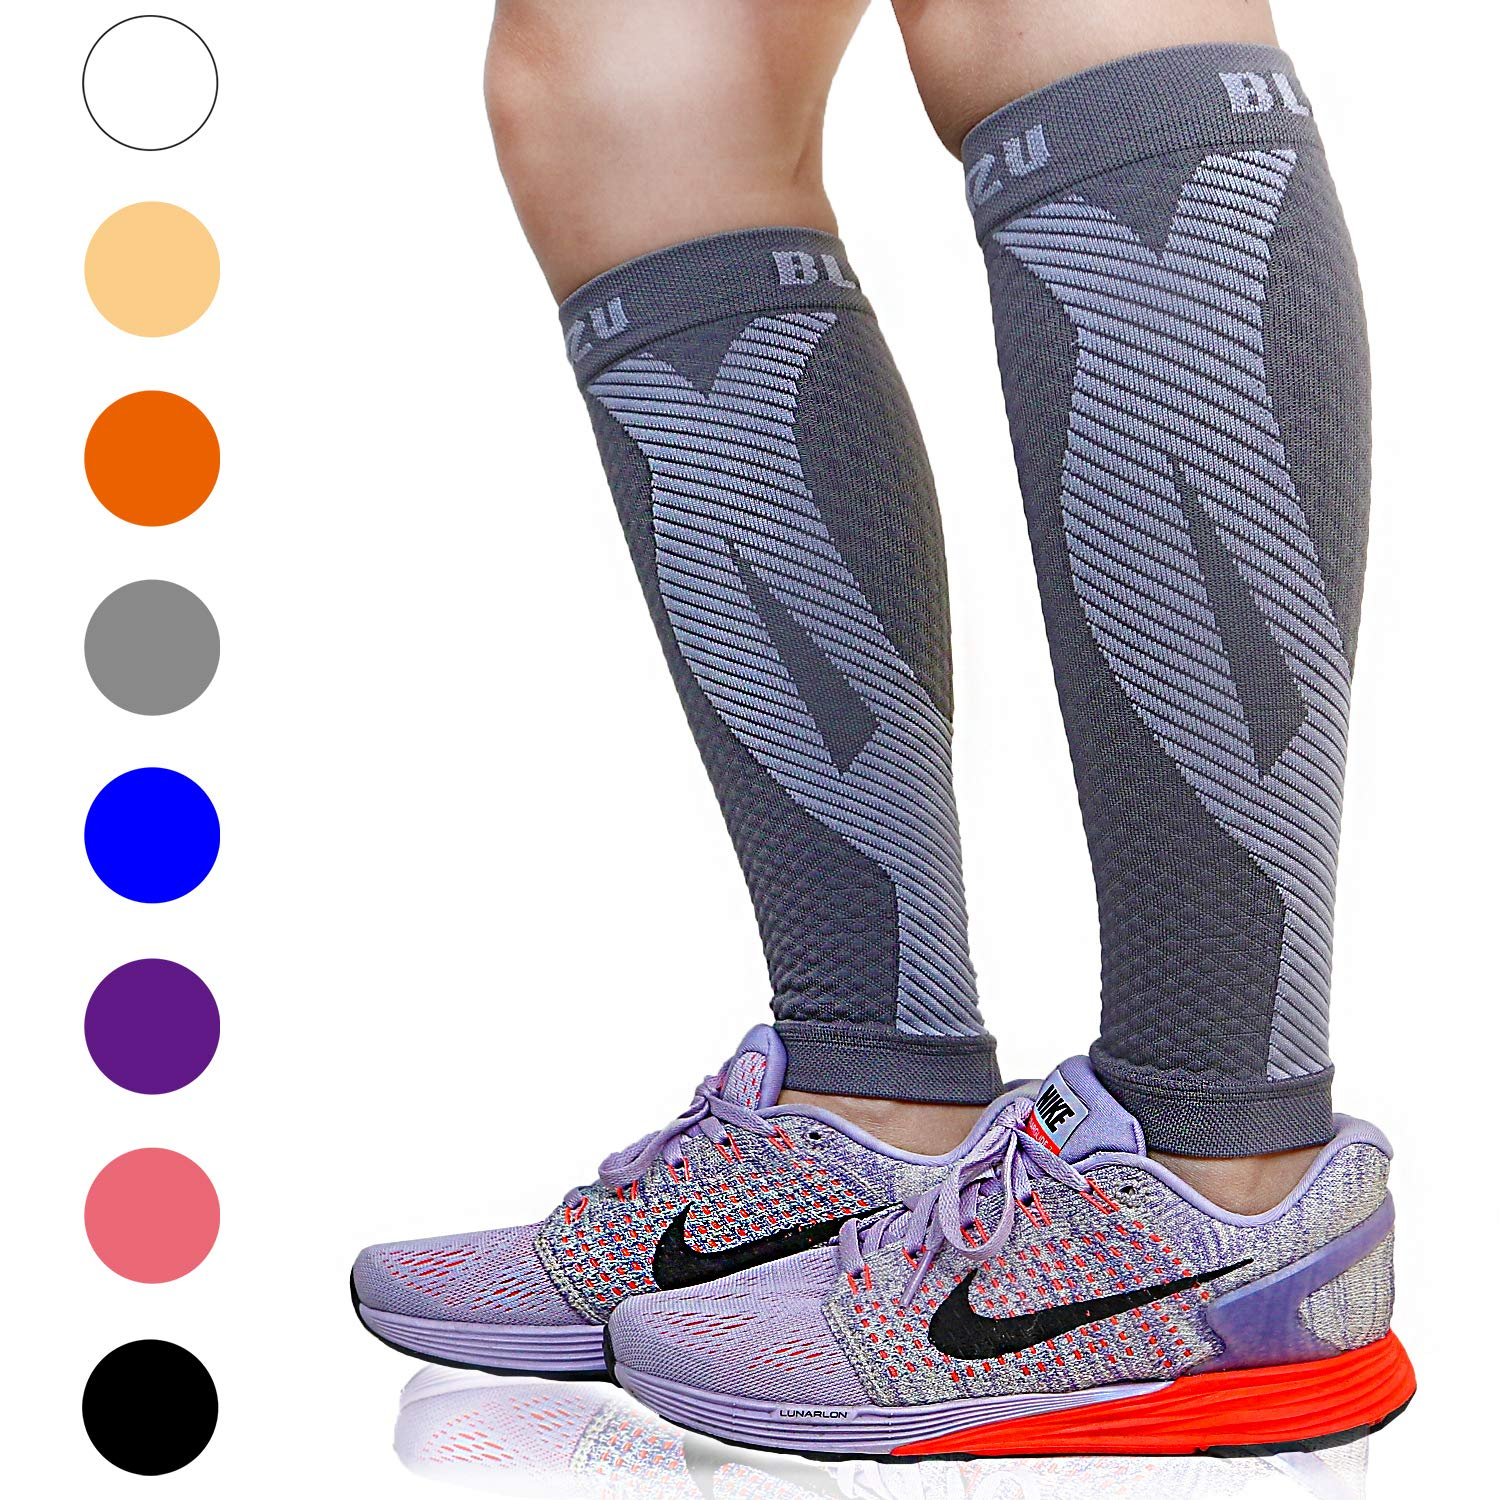 BLITZU Calf Compression Sleeve Leg Performance Support for Shin Splint & Calf Pain Relief. Men Women Runners Guards Sleeves for Running. Improves Circulation and Recovery (Gray, Large/X-Large) by BLITZU